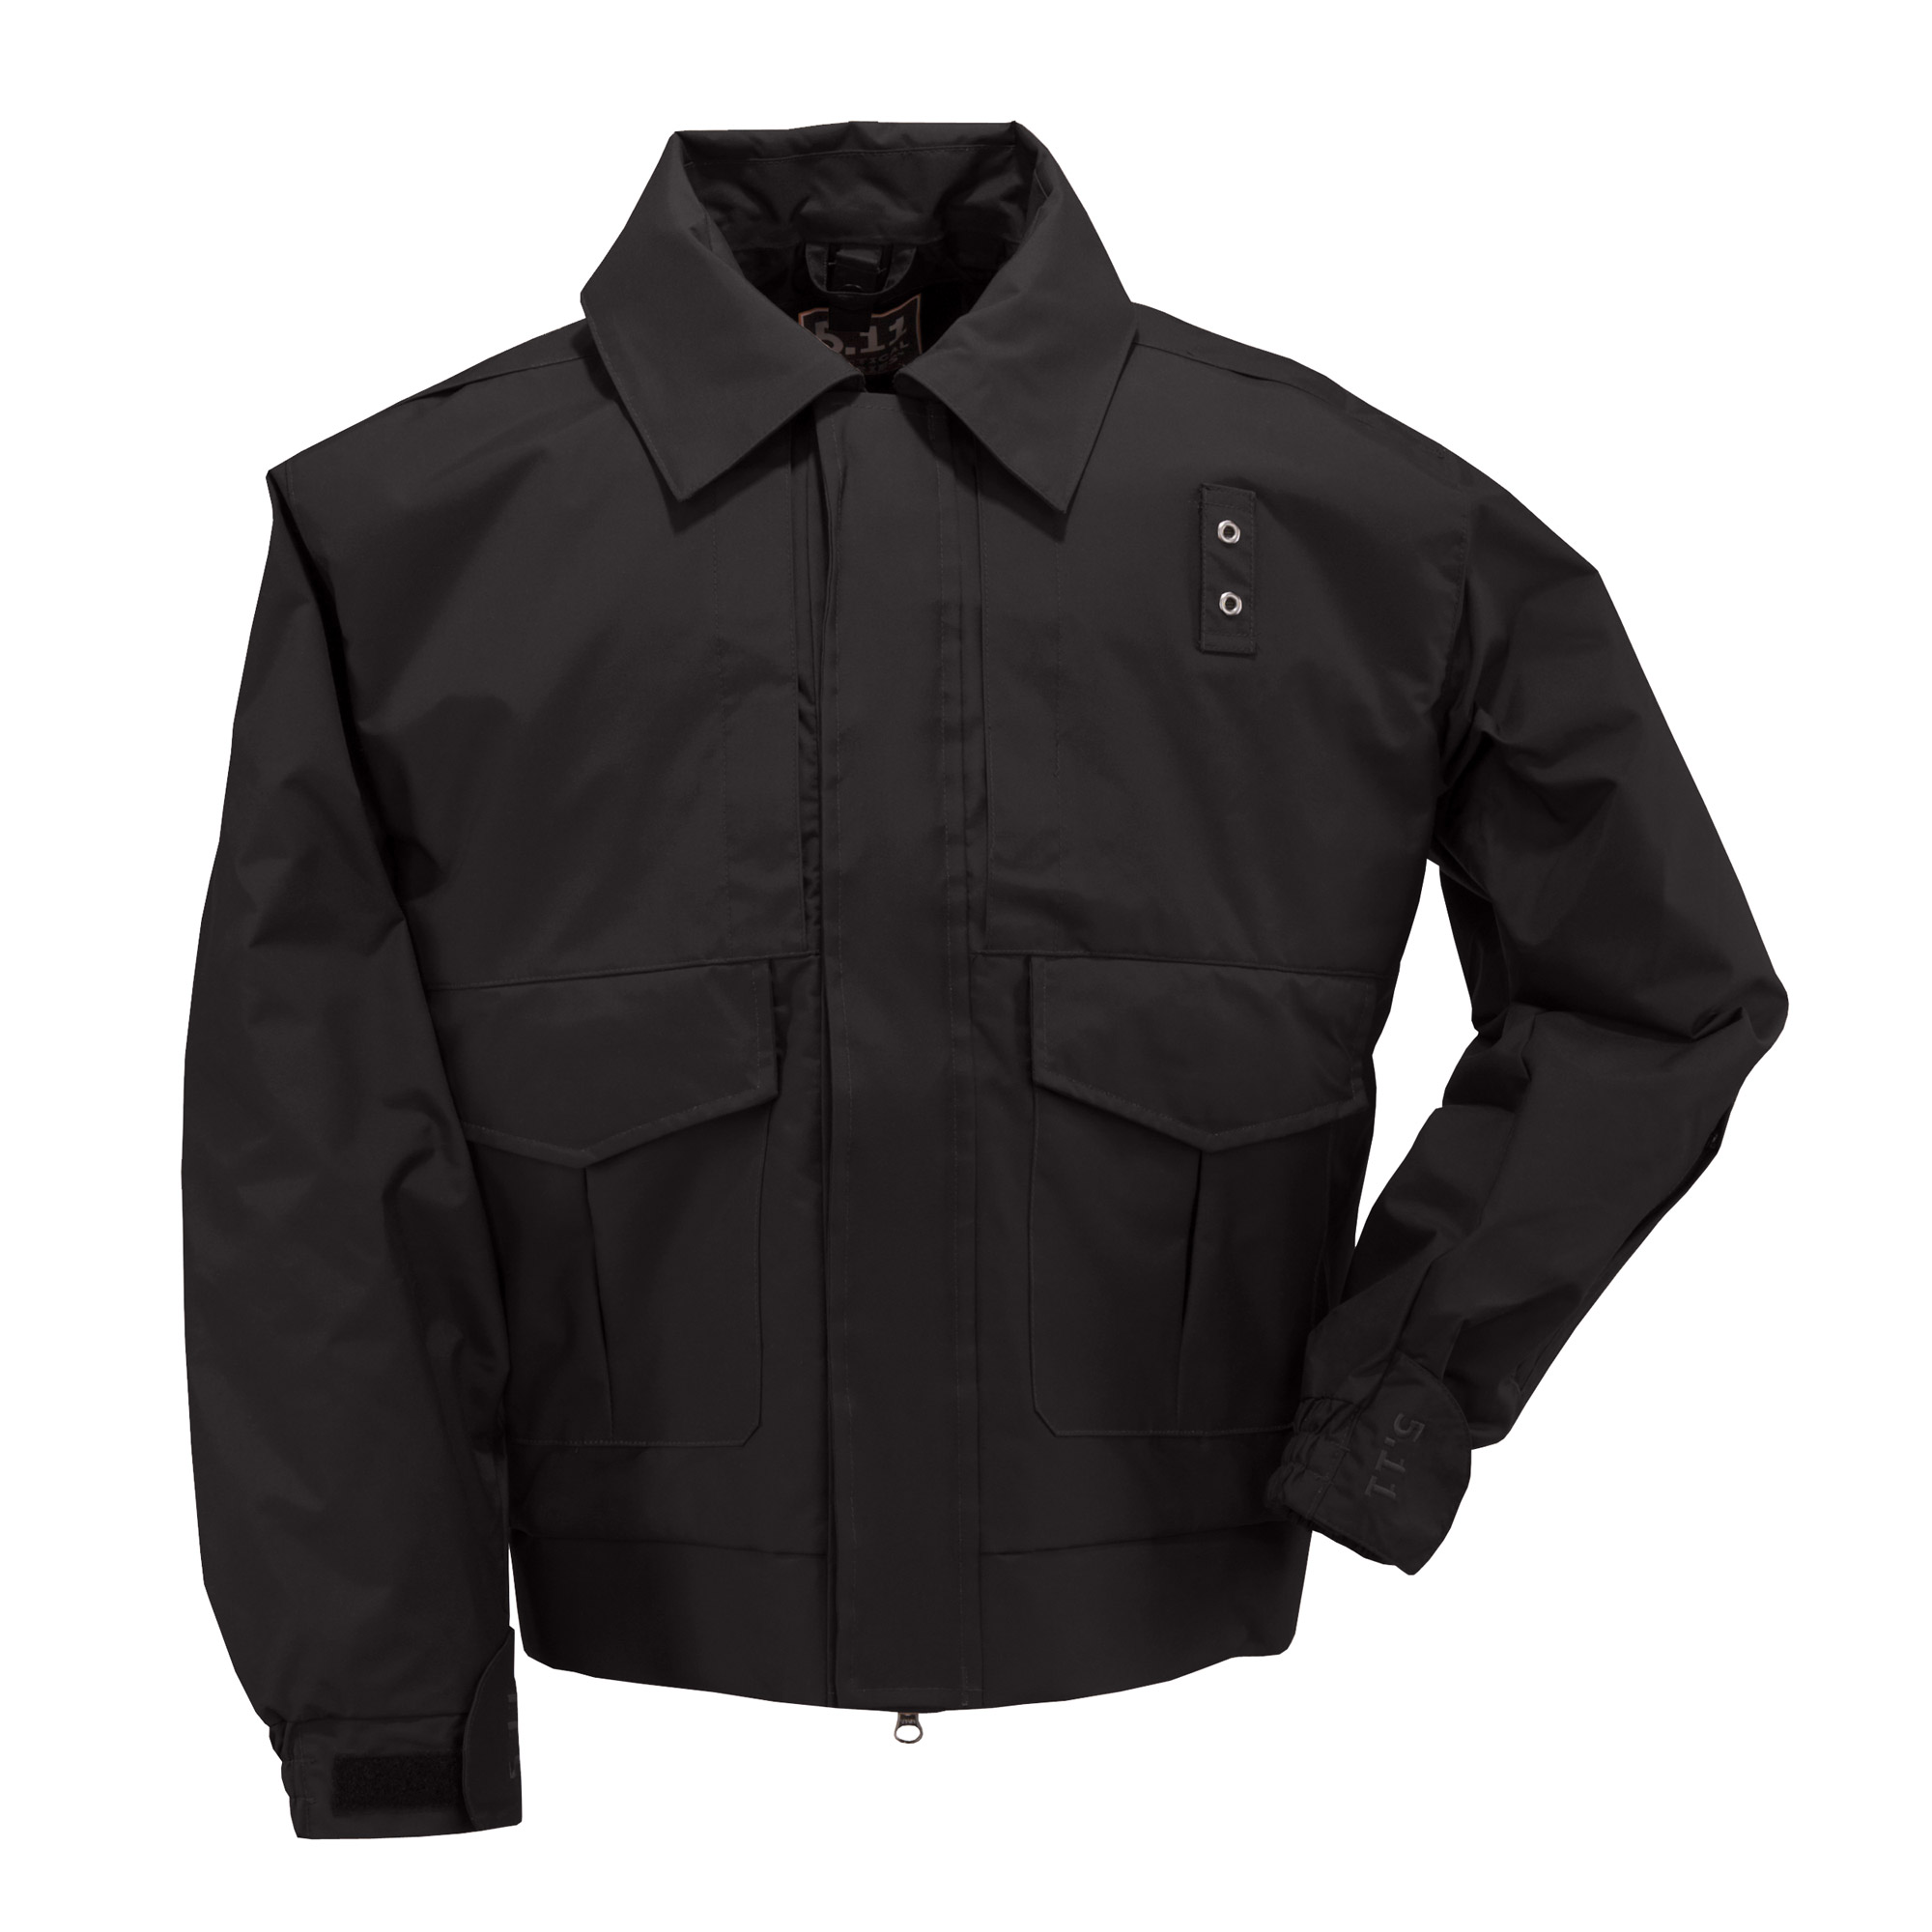 5.11 Tactical Men's 4-in-1 Patrol Jacket™ (Black) thumbnail